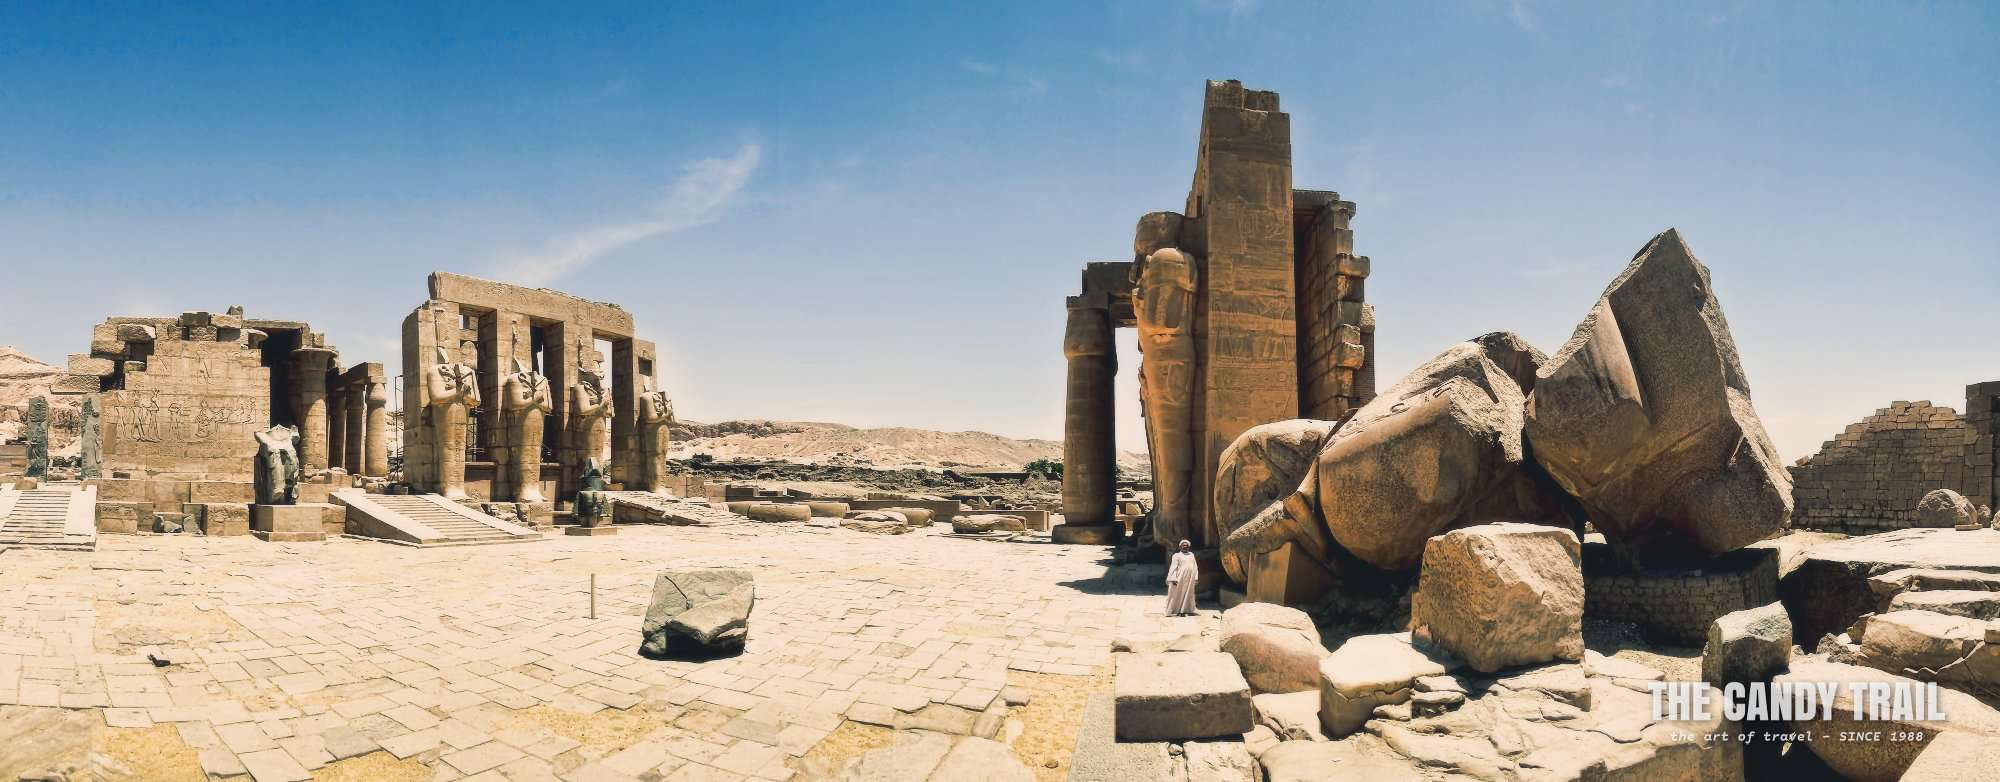 Ramesseum Temple Ruins Panorama Luxor Egypt